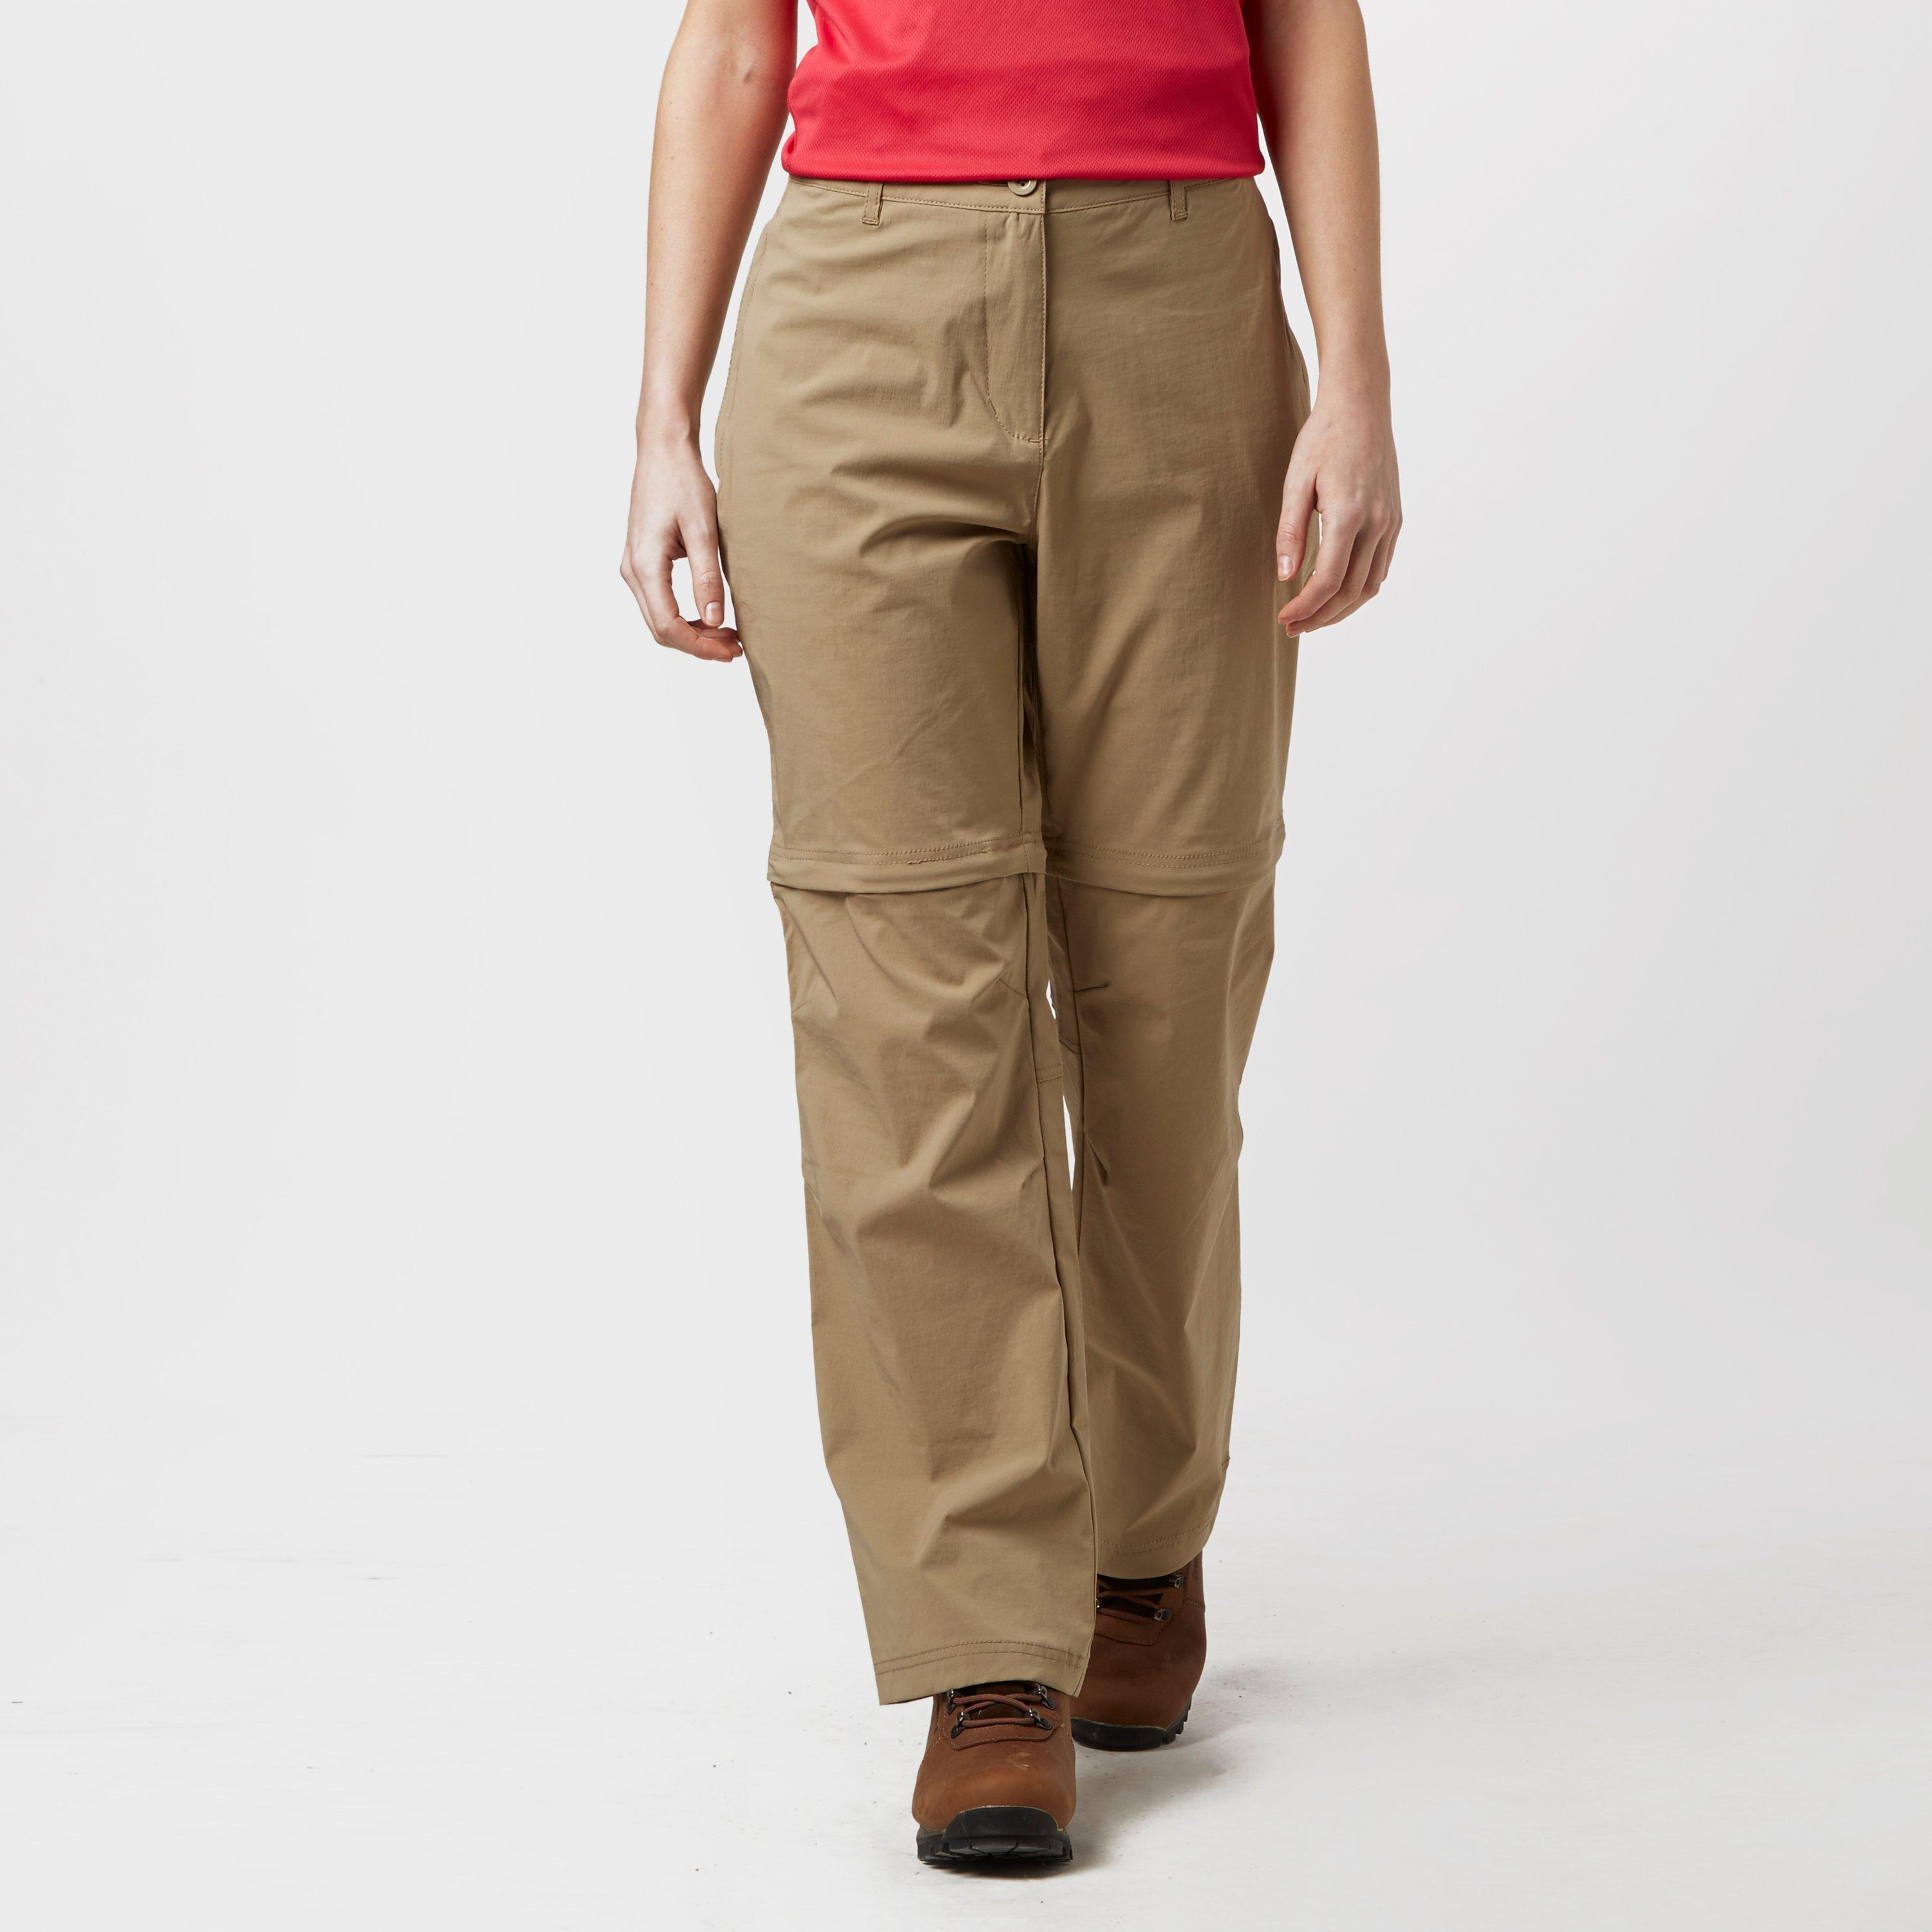 Peter Storm Womens Stretch Convertible Zip Off Trousers Beige